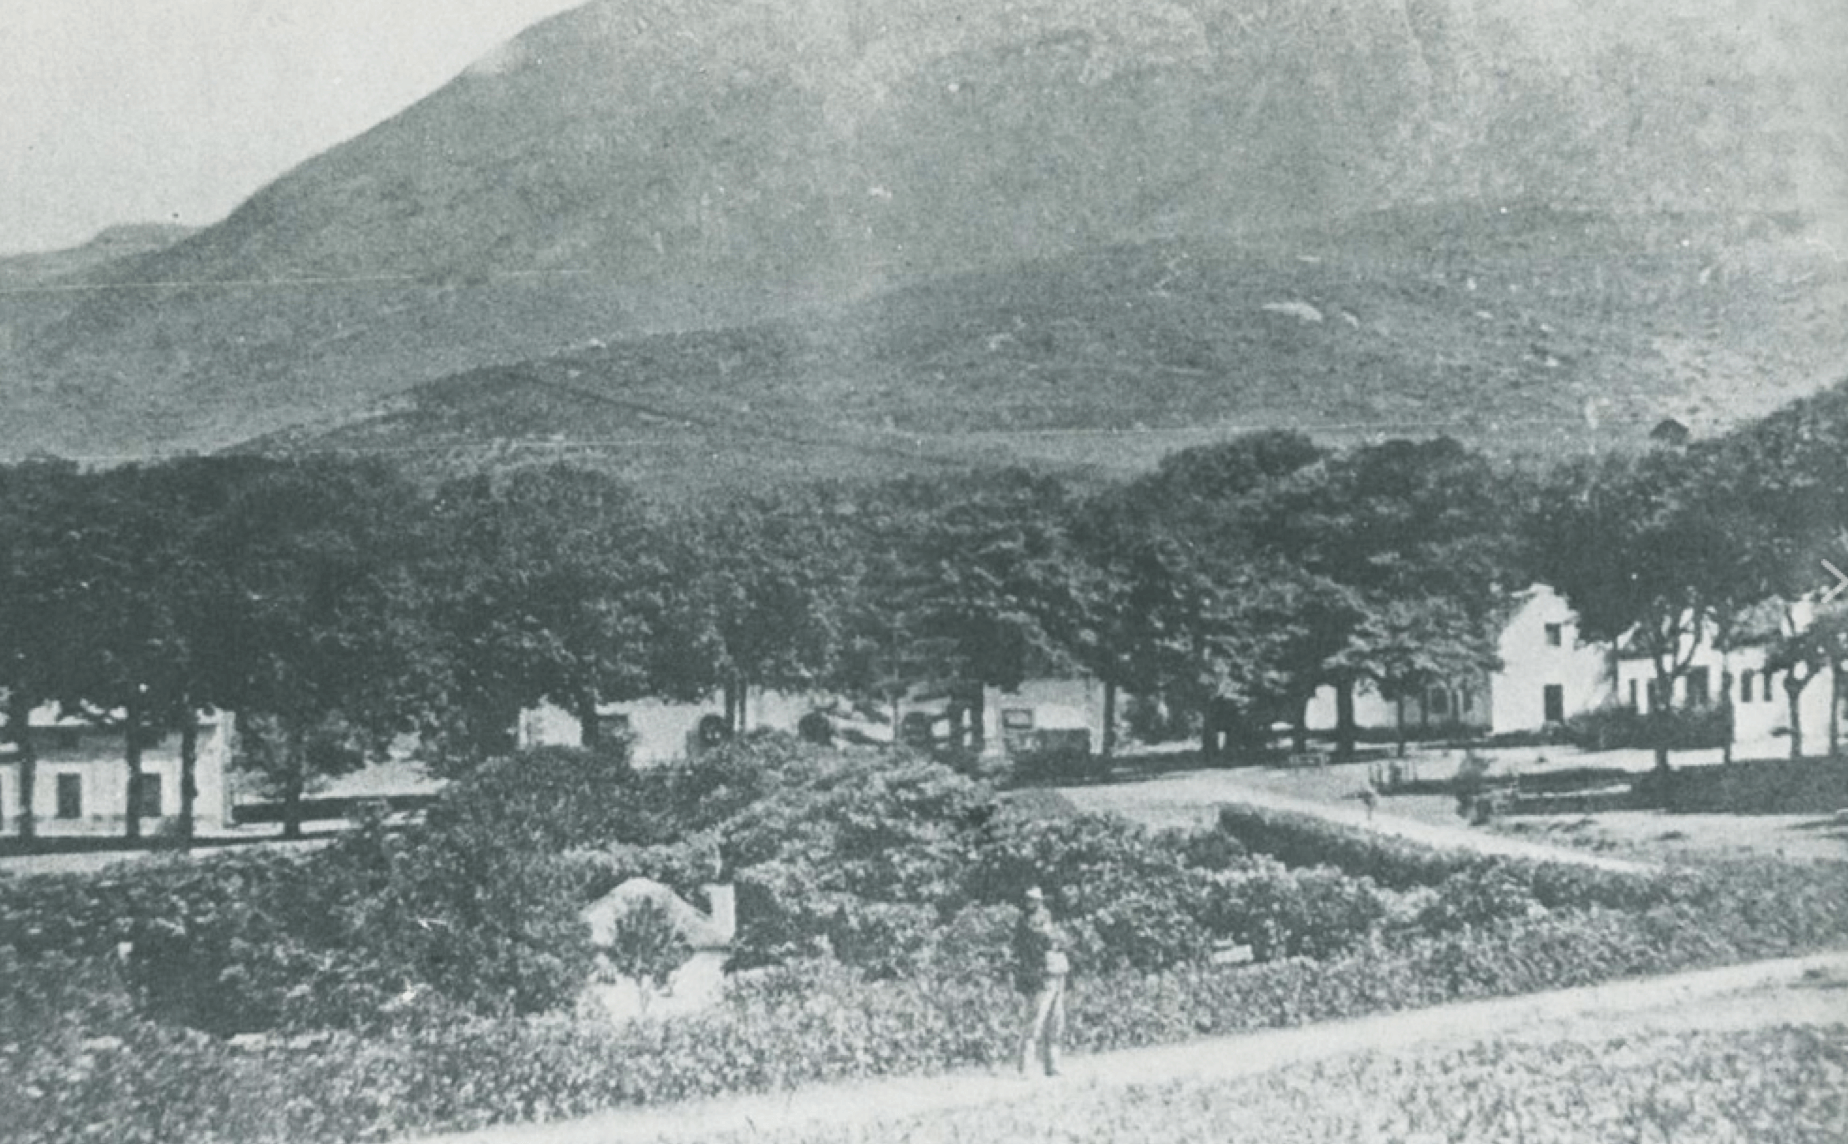 image of High Constantia farm dated 1861